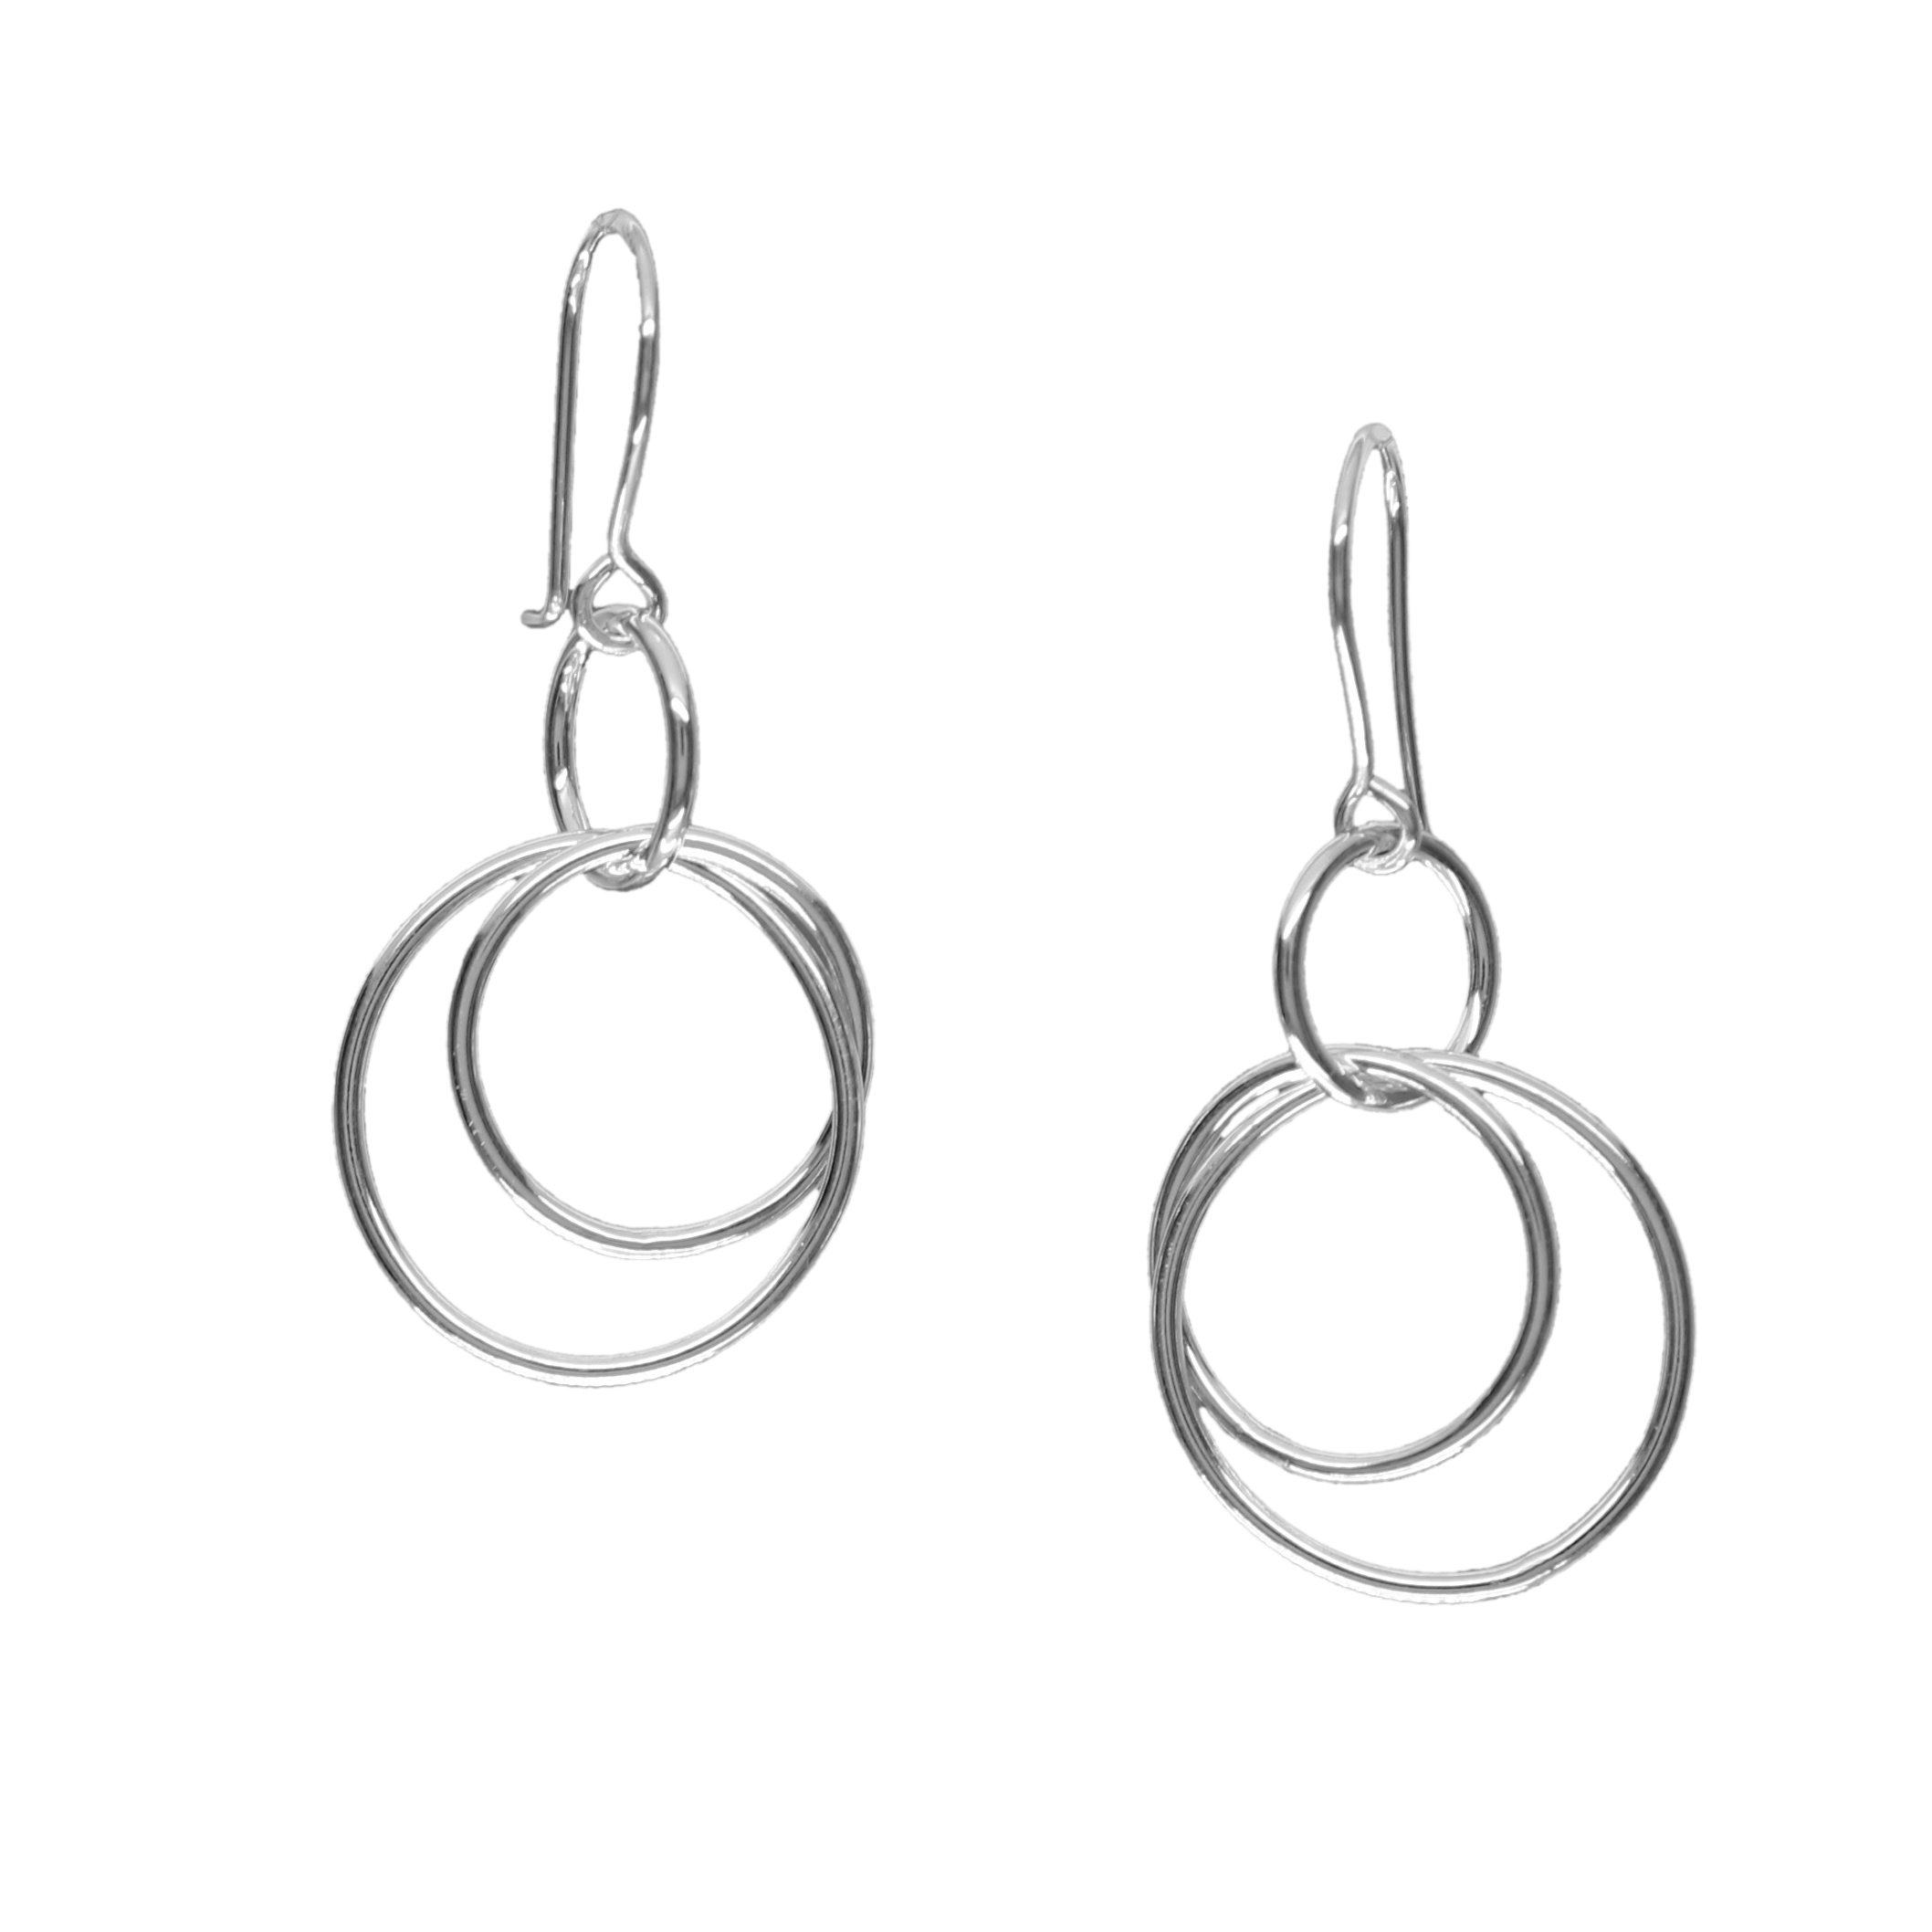 Circles single-drop earrings